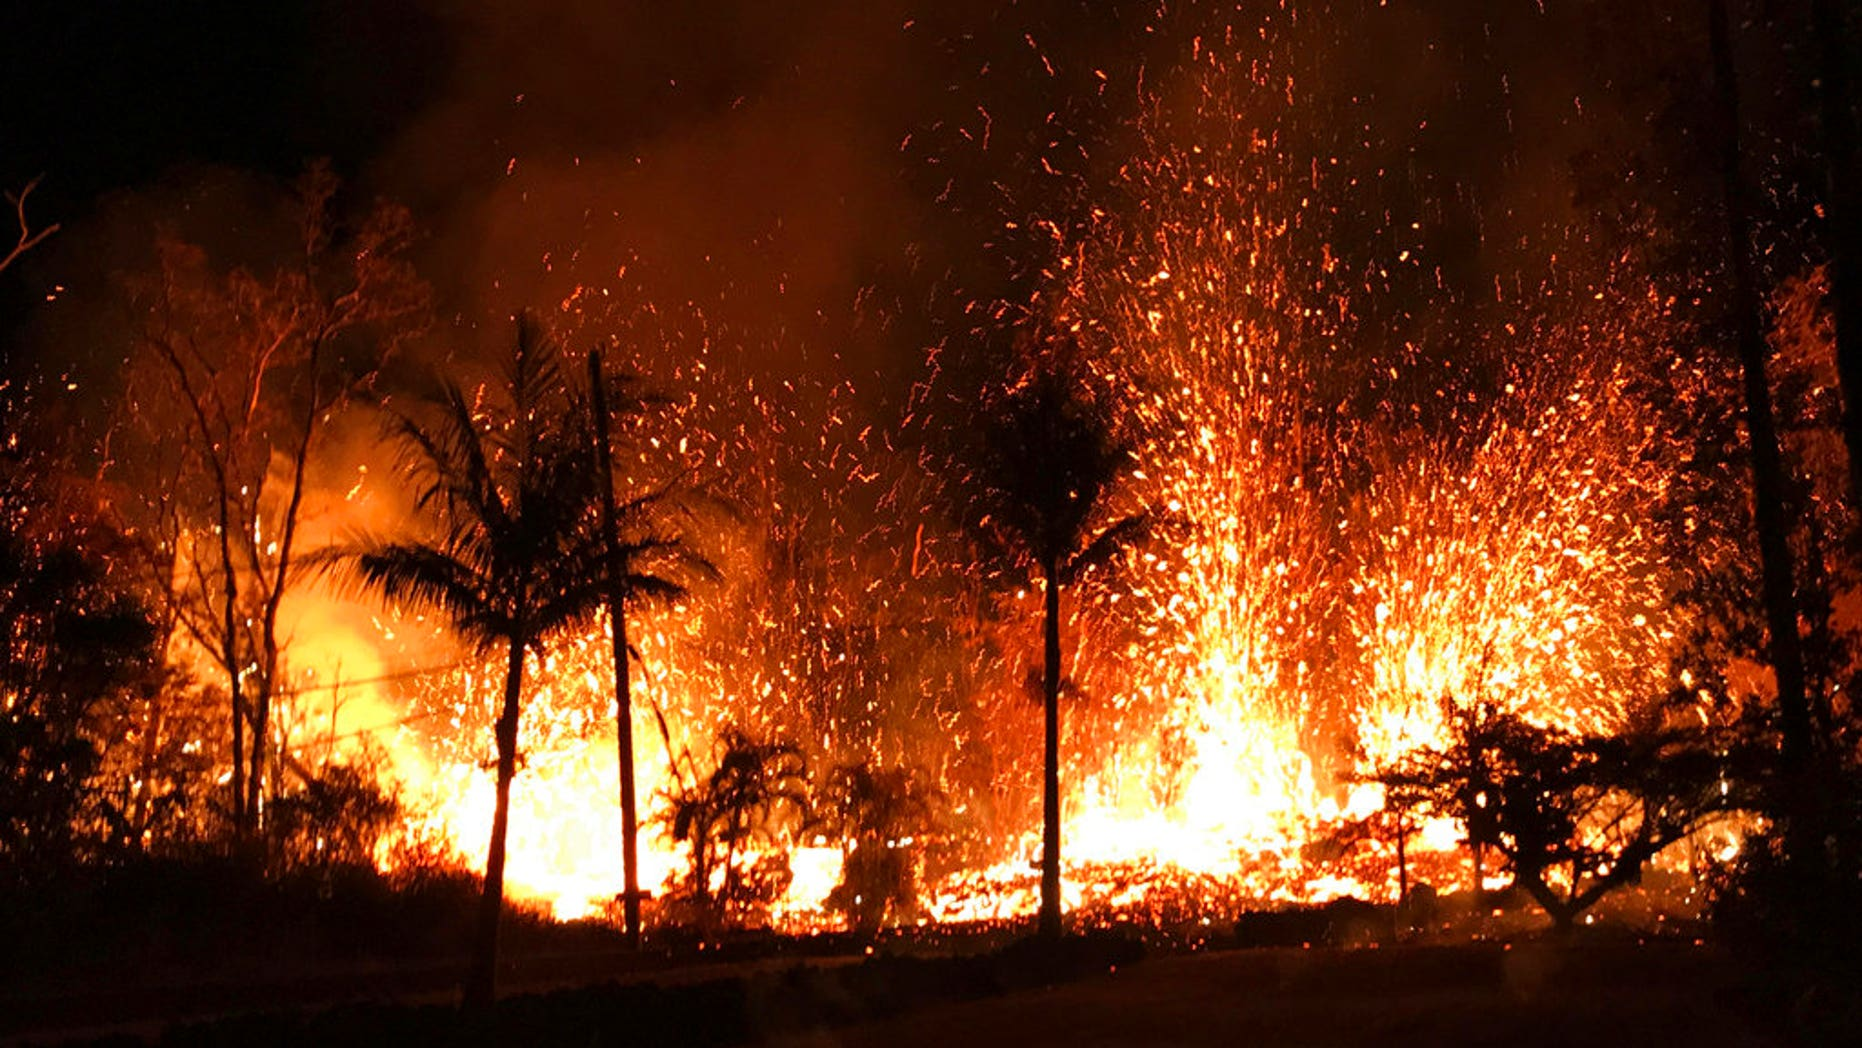 In this Saturday, May 5, 2018 photo, a new fissure erupts in Leilani Estates in Pahoa, Hawaii. Hawaii's erupting Kilauea volcano has destroyed homes and forced the evacuations of more than a thousand people. (U.S. Geological Survey via AP)